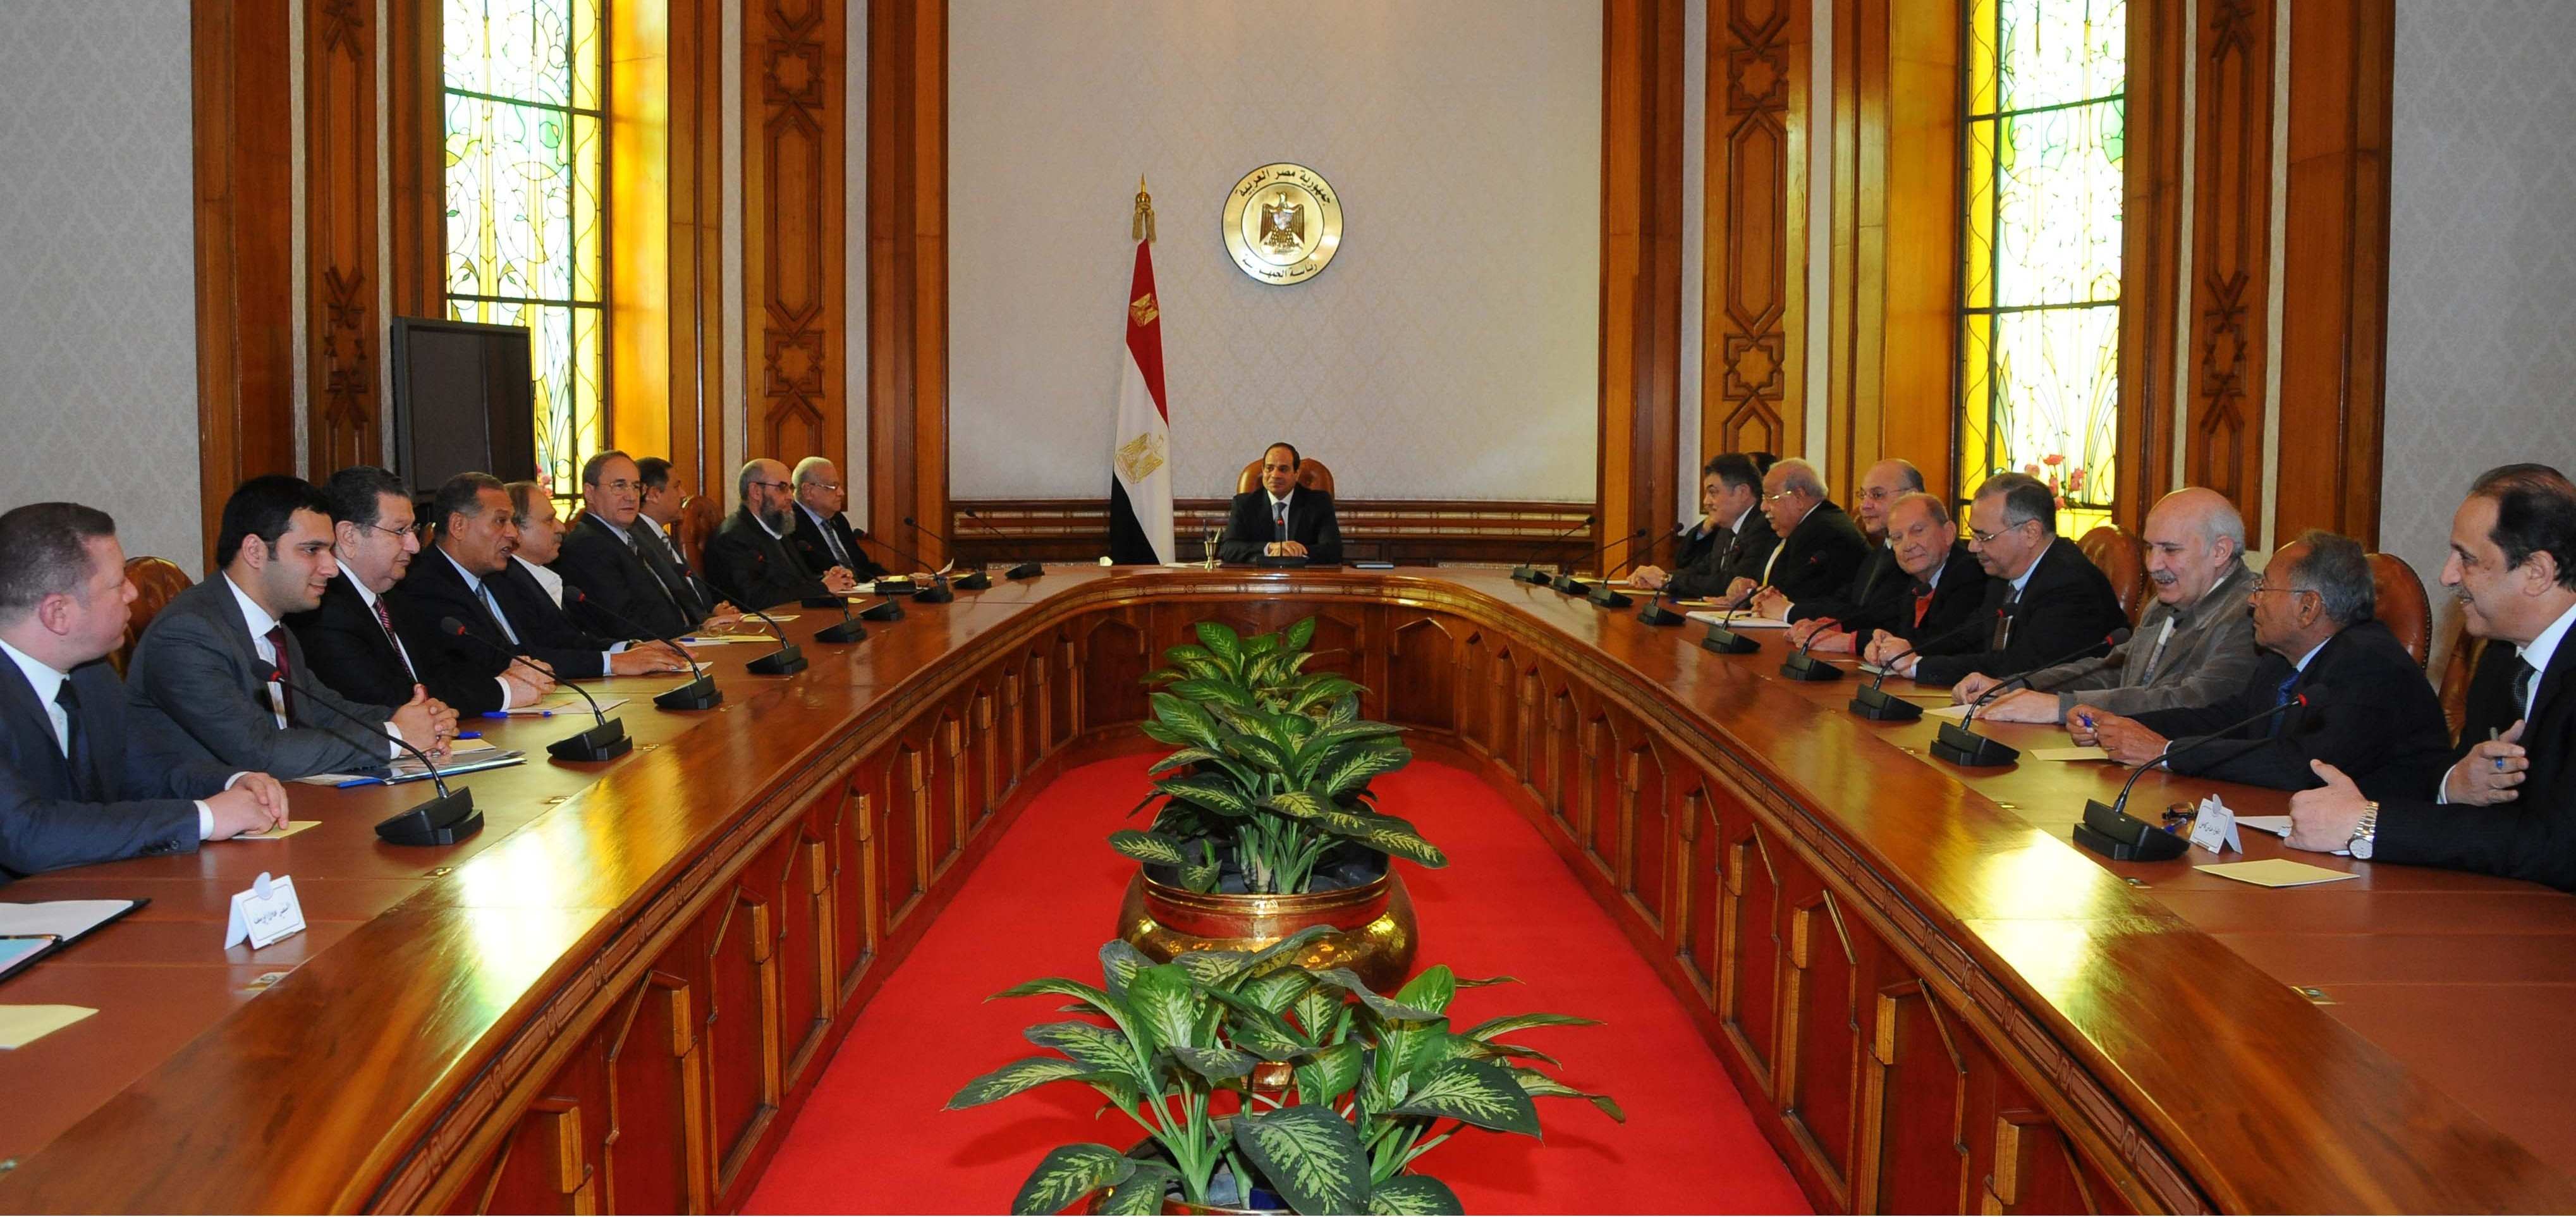 1)Abdel Fattah Al-Sisi met with political party leaders in January 2015 for first time since he became president.  (Photo by Presidential Office)